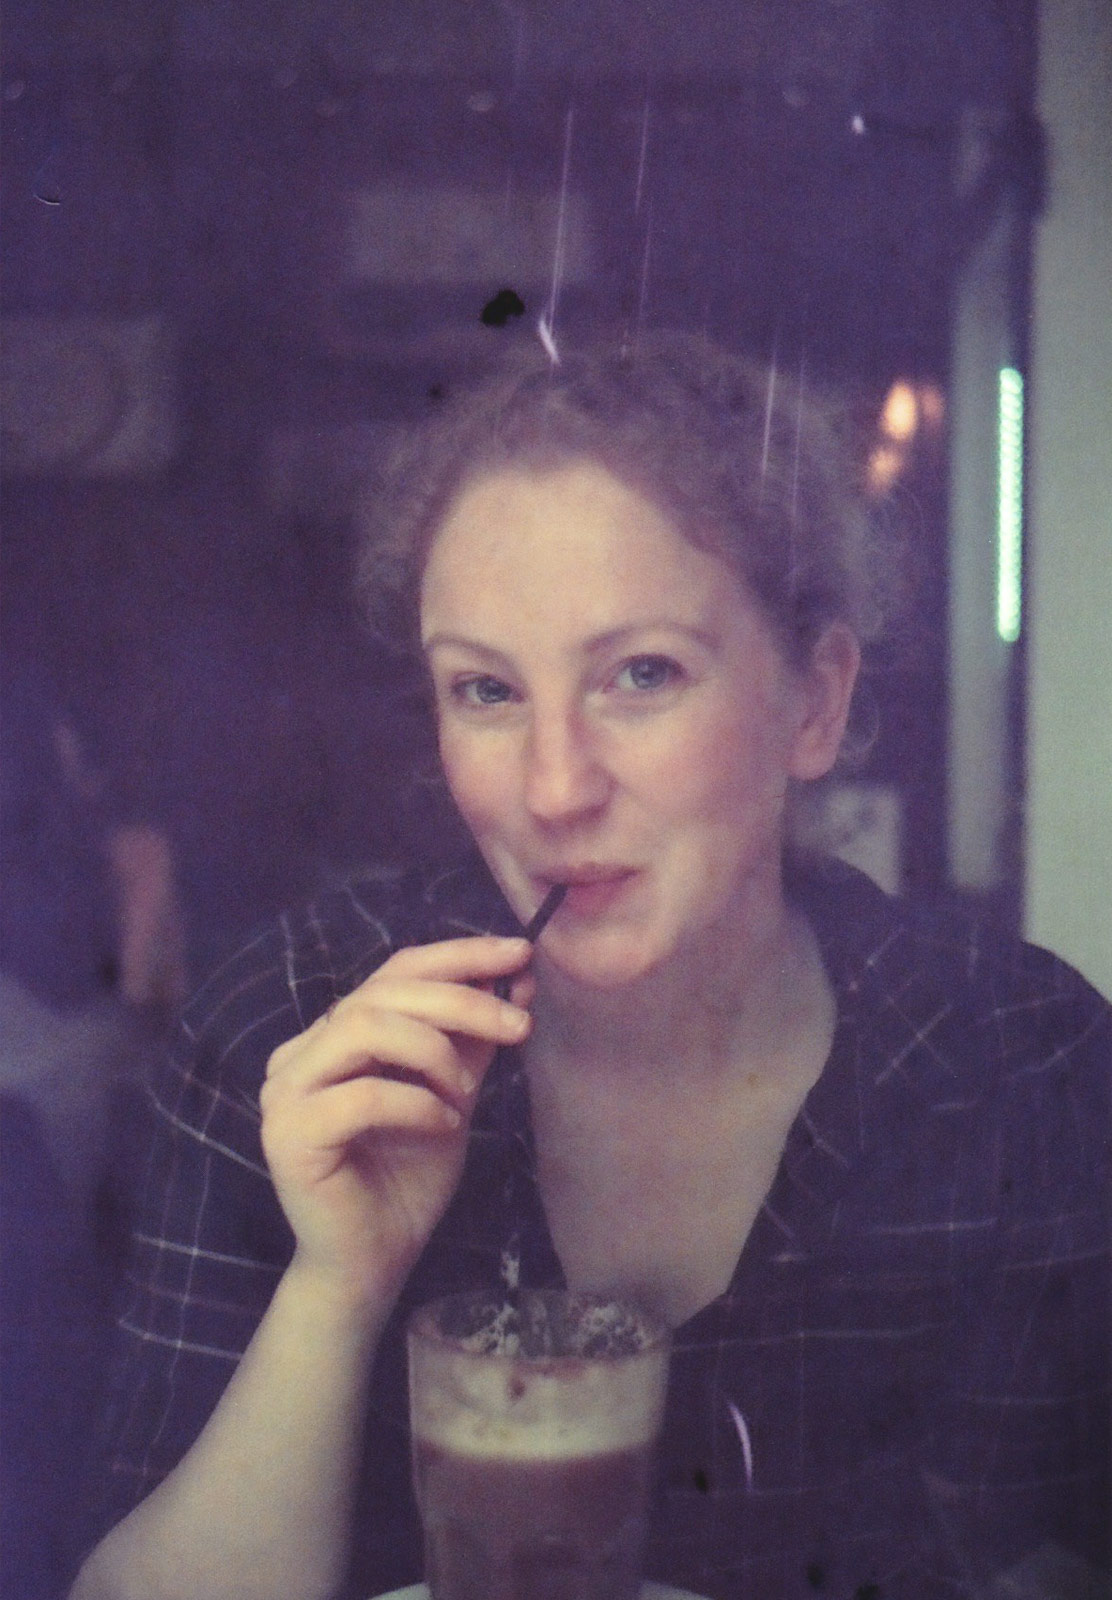 Woman drinking through straw